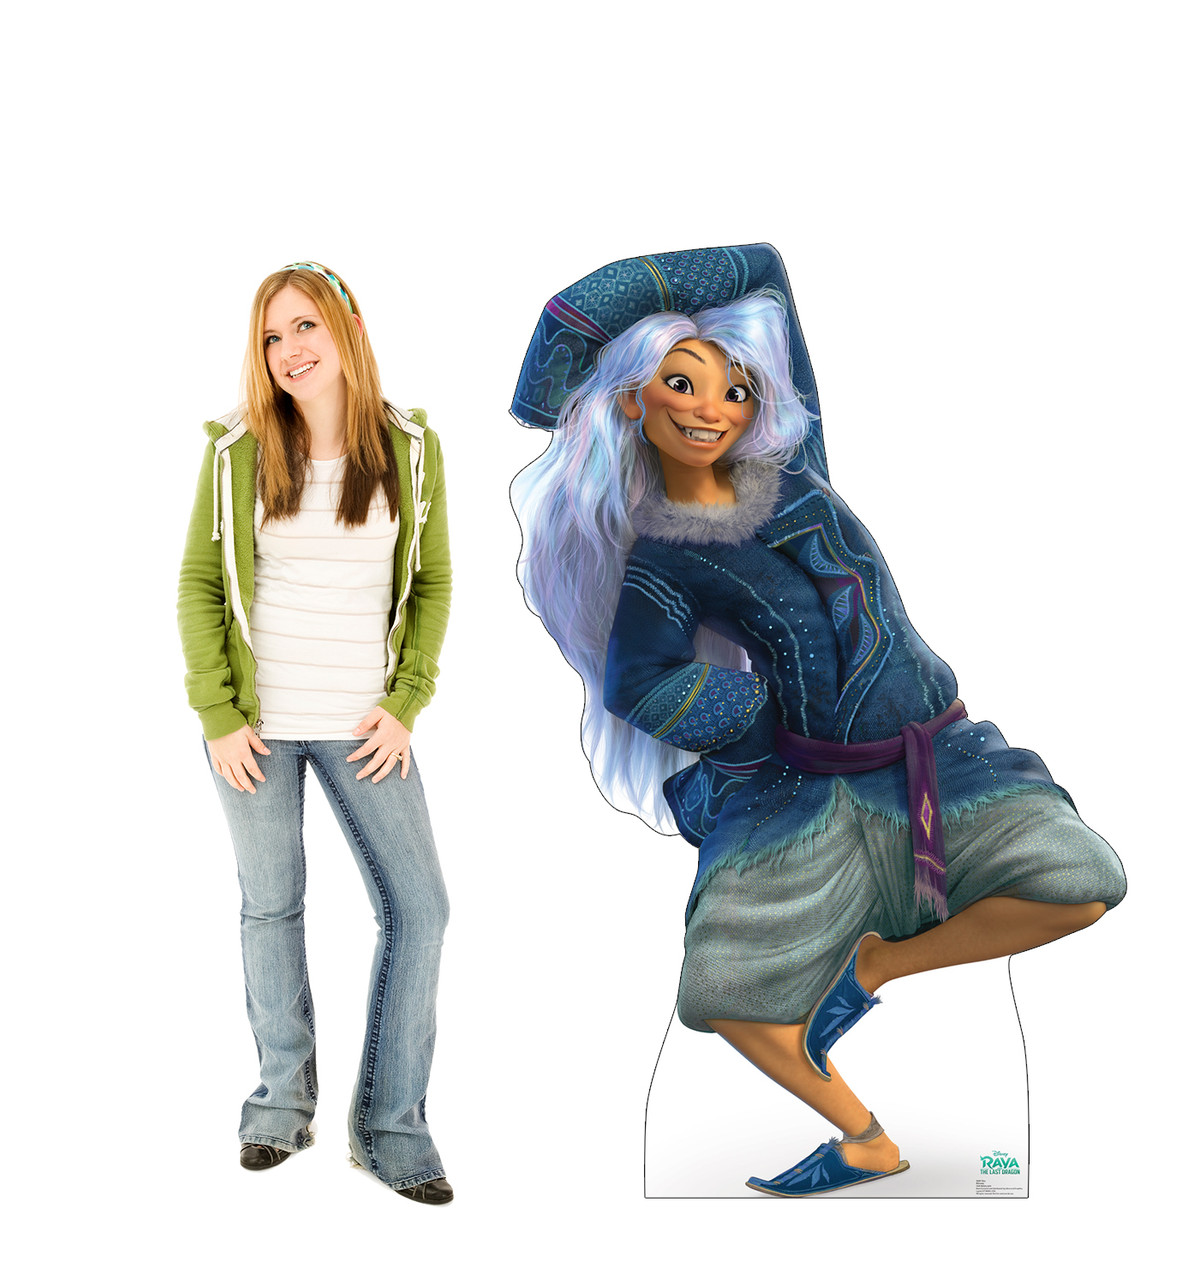 Lifes-size cardboard standee of Sisu from Disney's Raya and the Last Dragon with model.